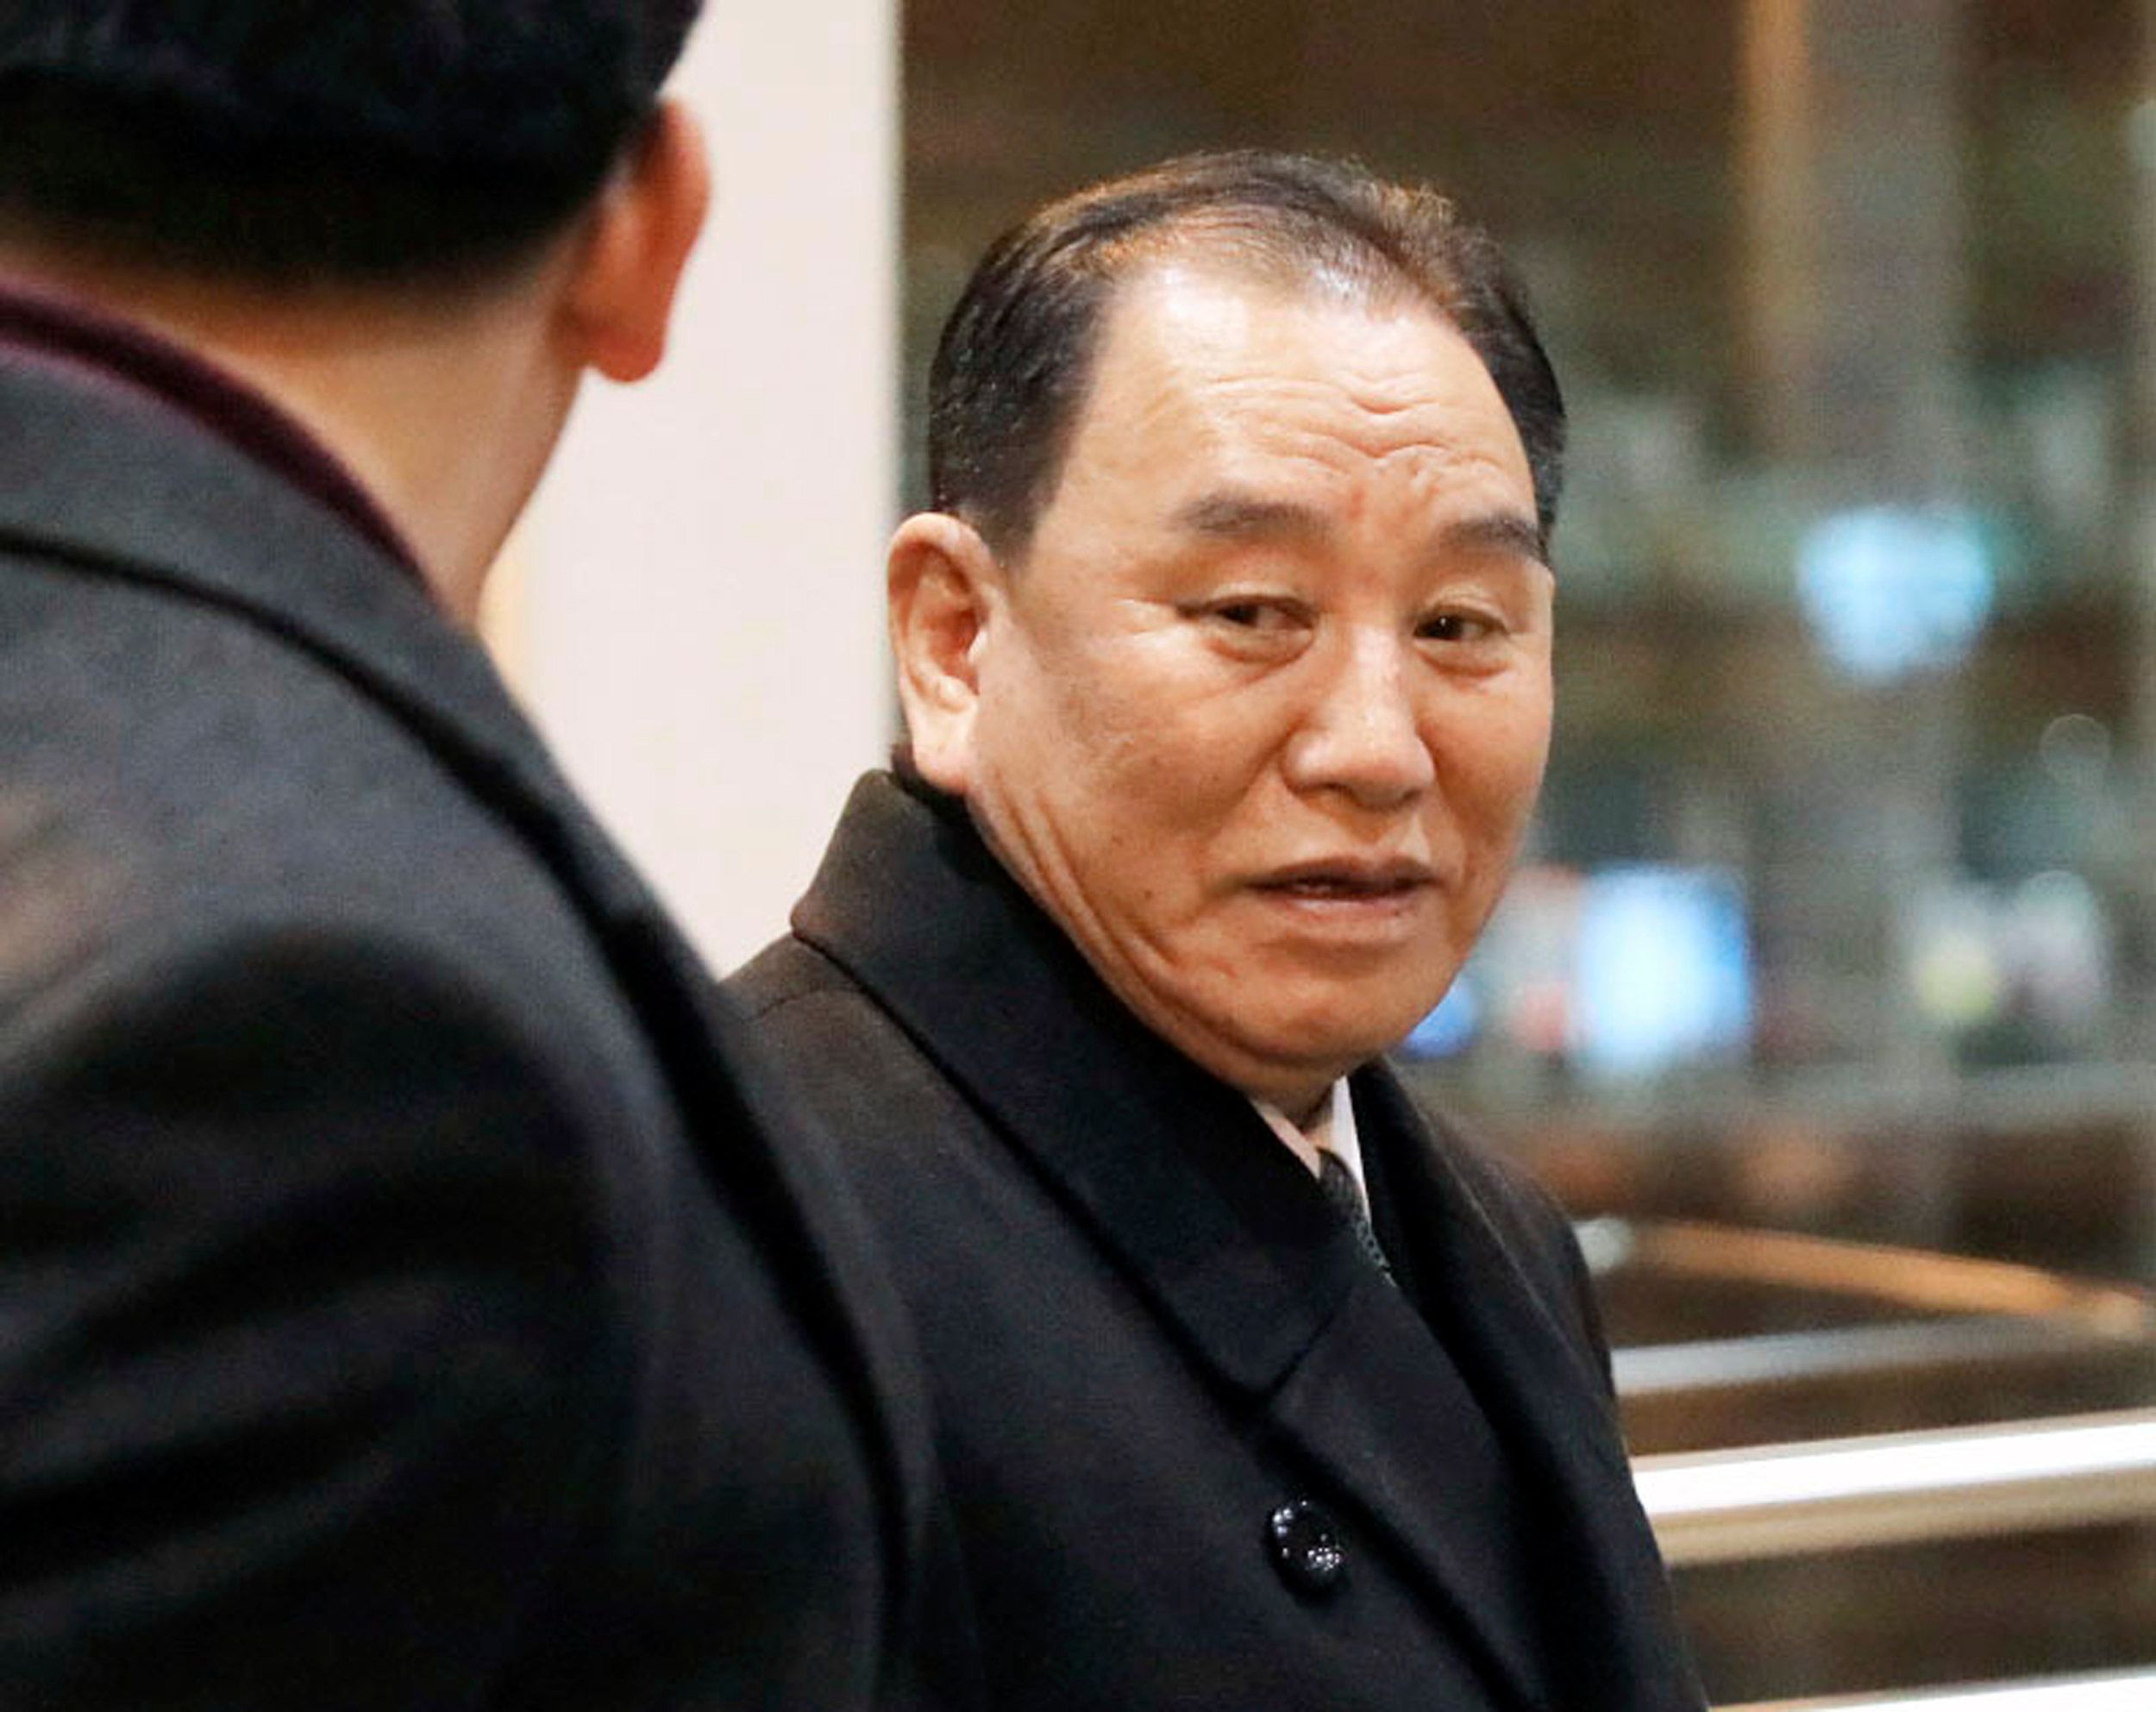 North Korean official heads for talks in Sweden